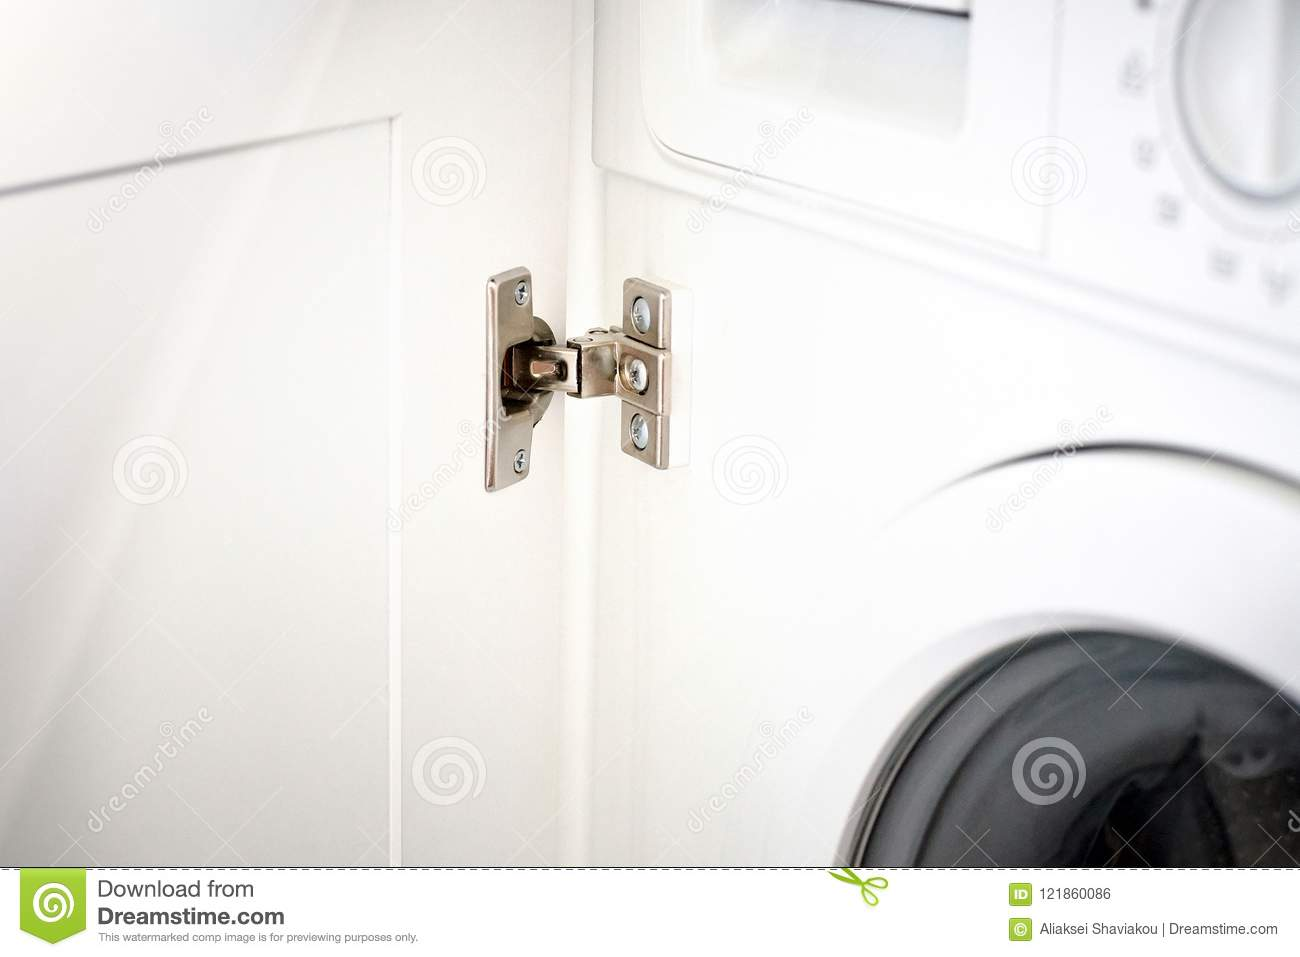 Hinge Kitchen Assembled On White Doors Steel Stock Photo Image Of Home Load 121860086